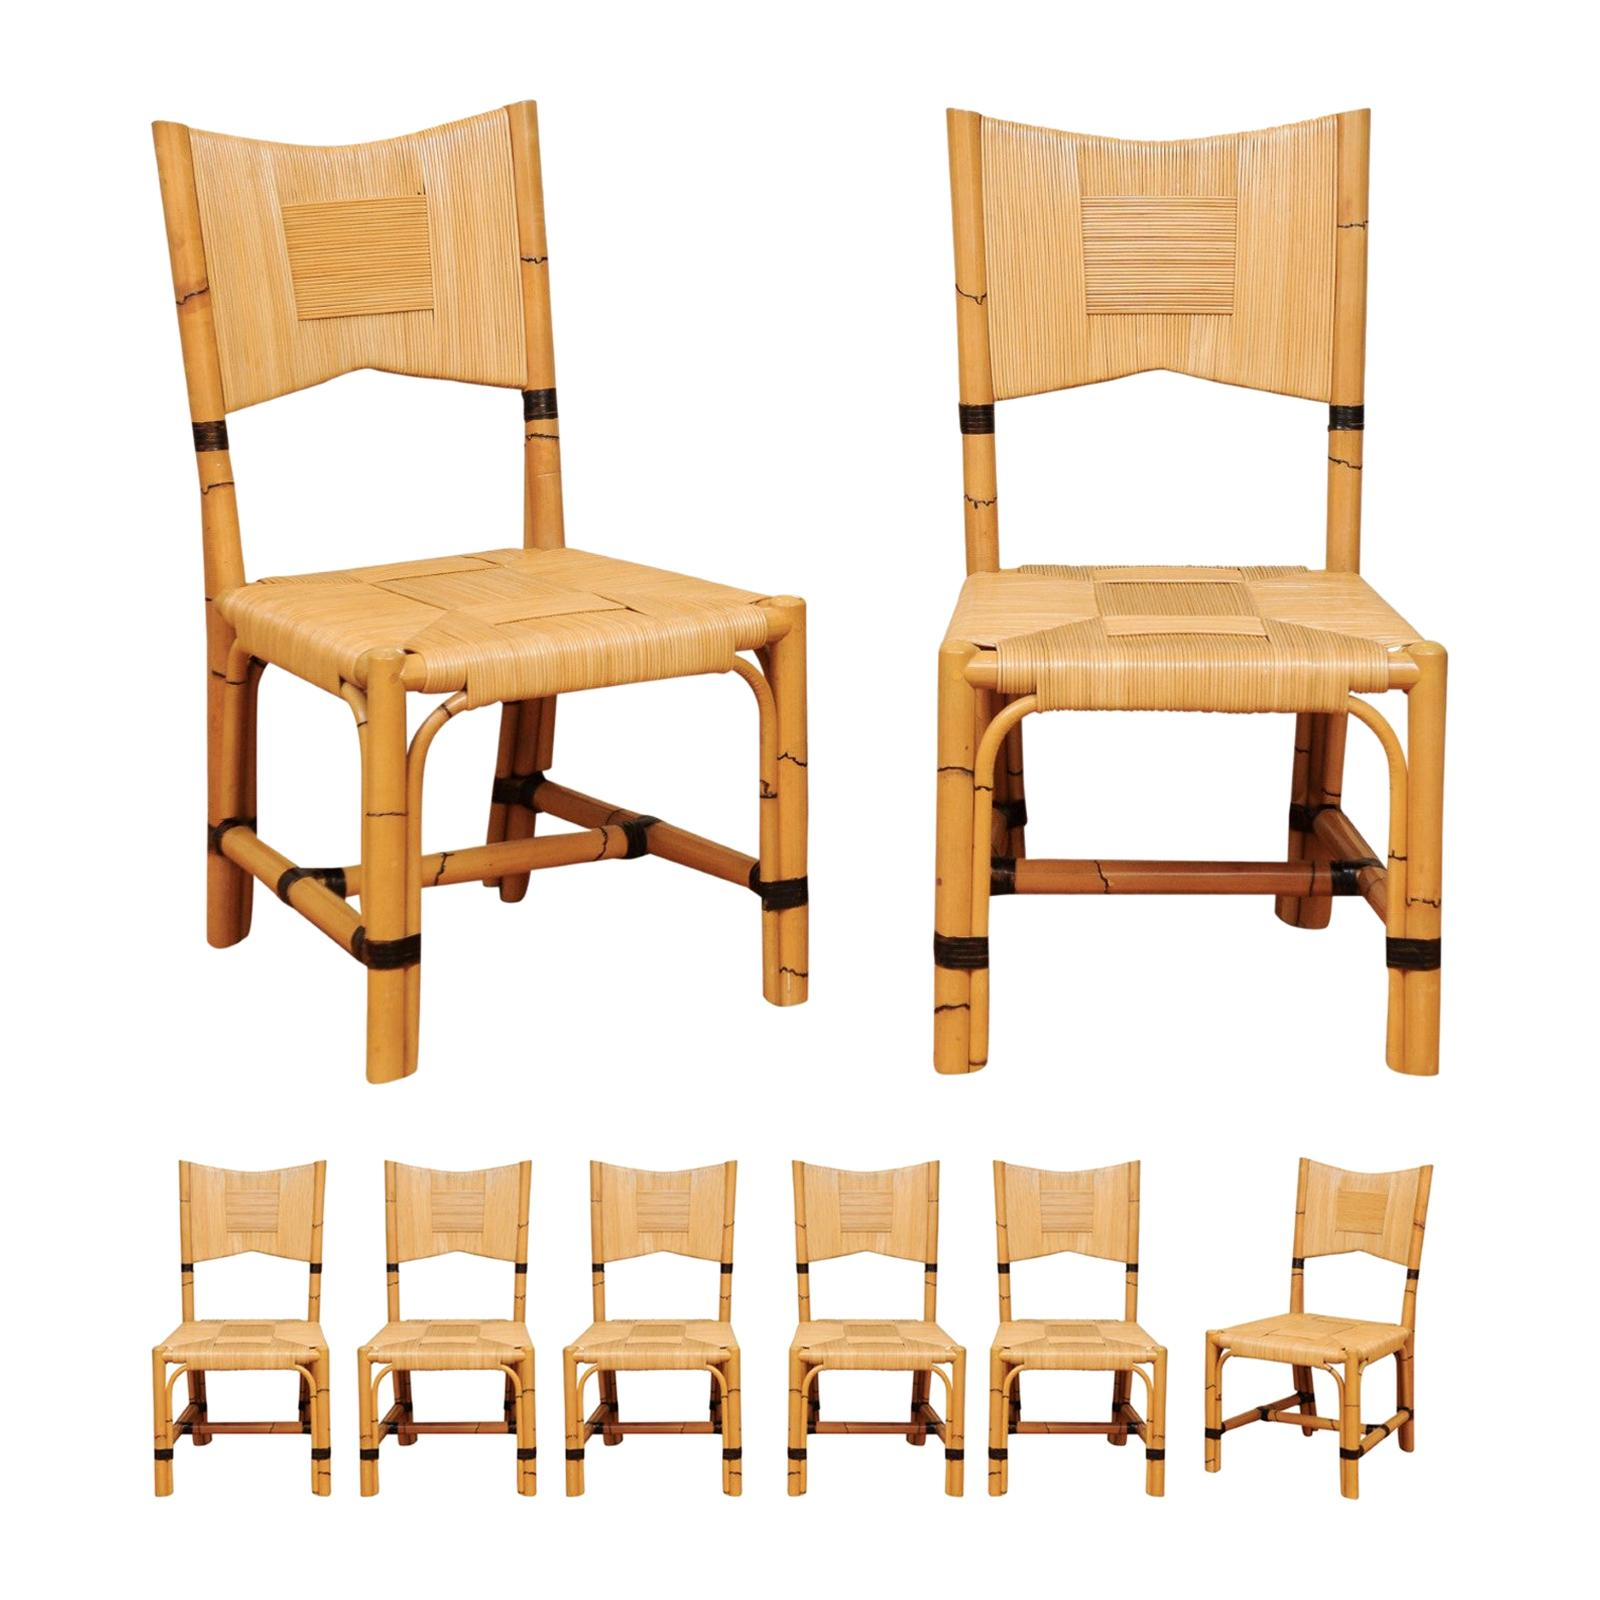 Superb Set of 8 Rush Rattan Dining Chairs by John Hutton for Donghia, circa 1995